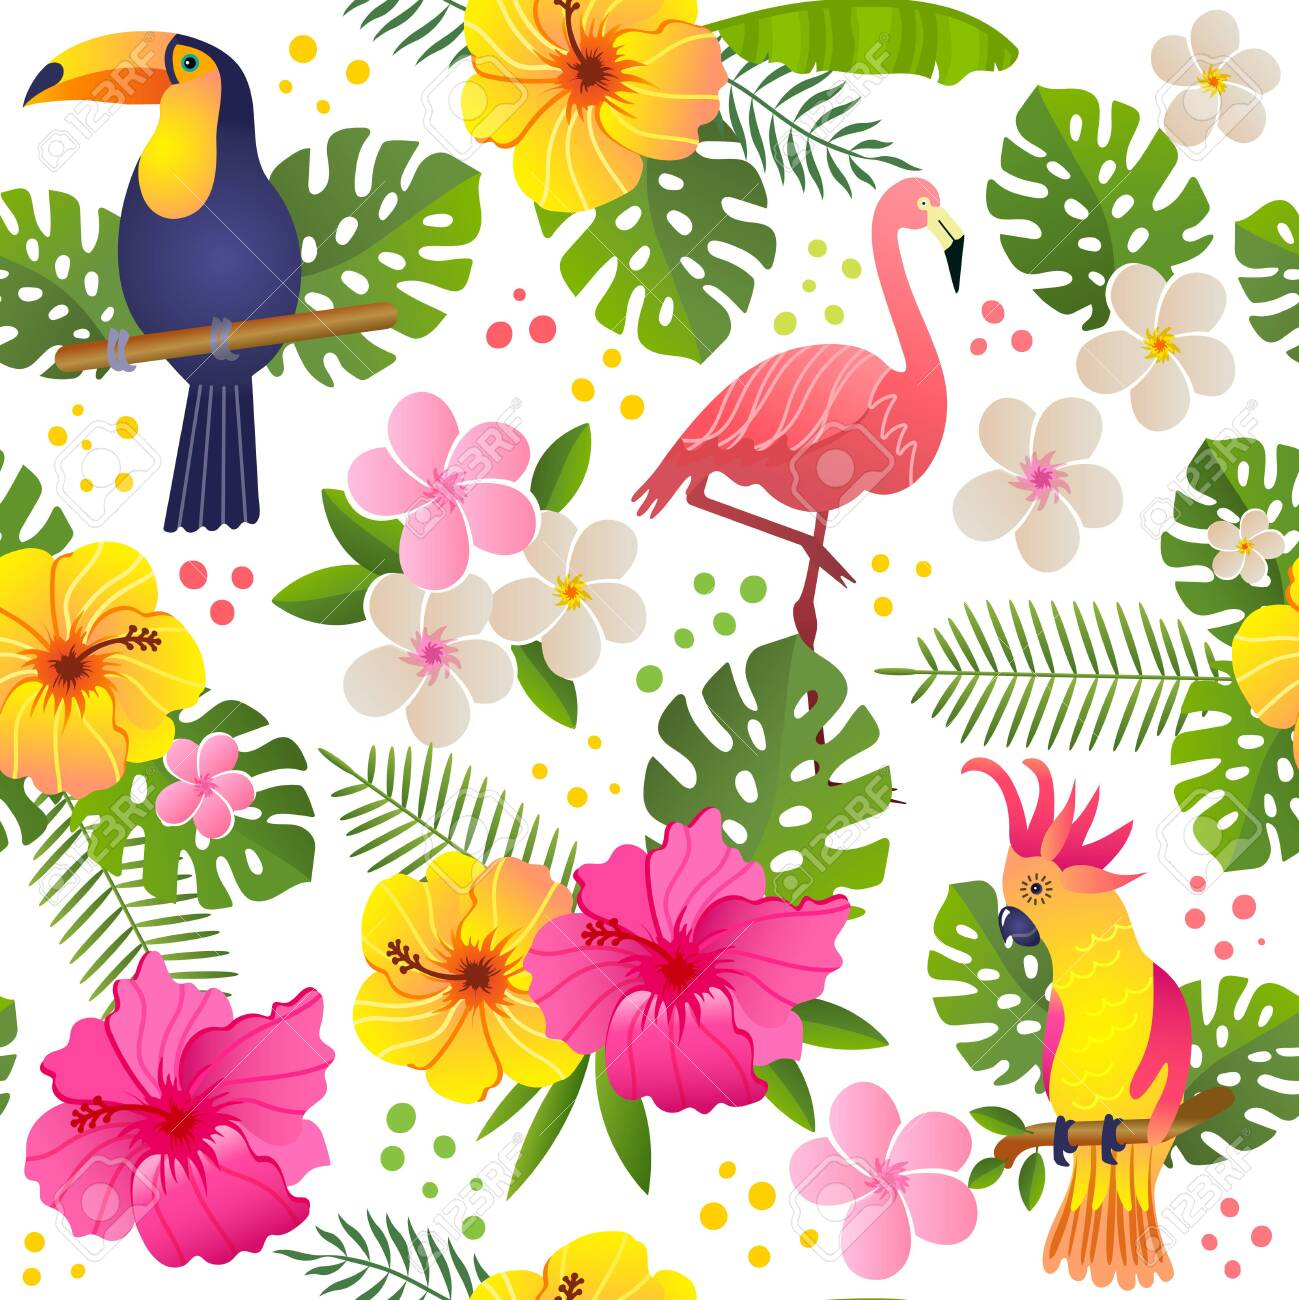 toucan and parrot sits on a flowering branch vector illustration seamless pattern - 144532454